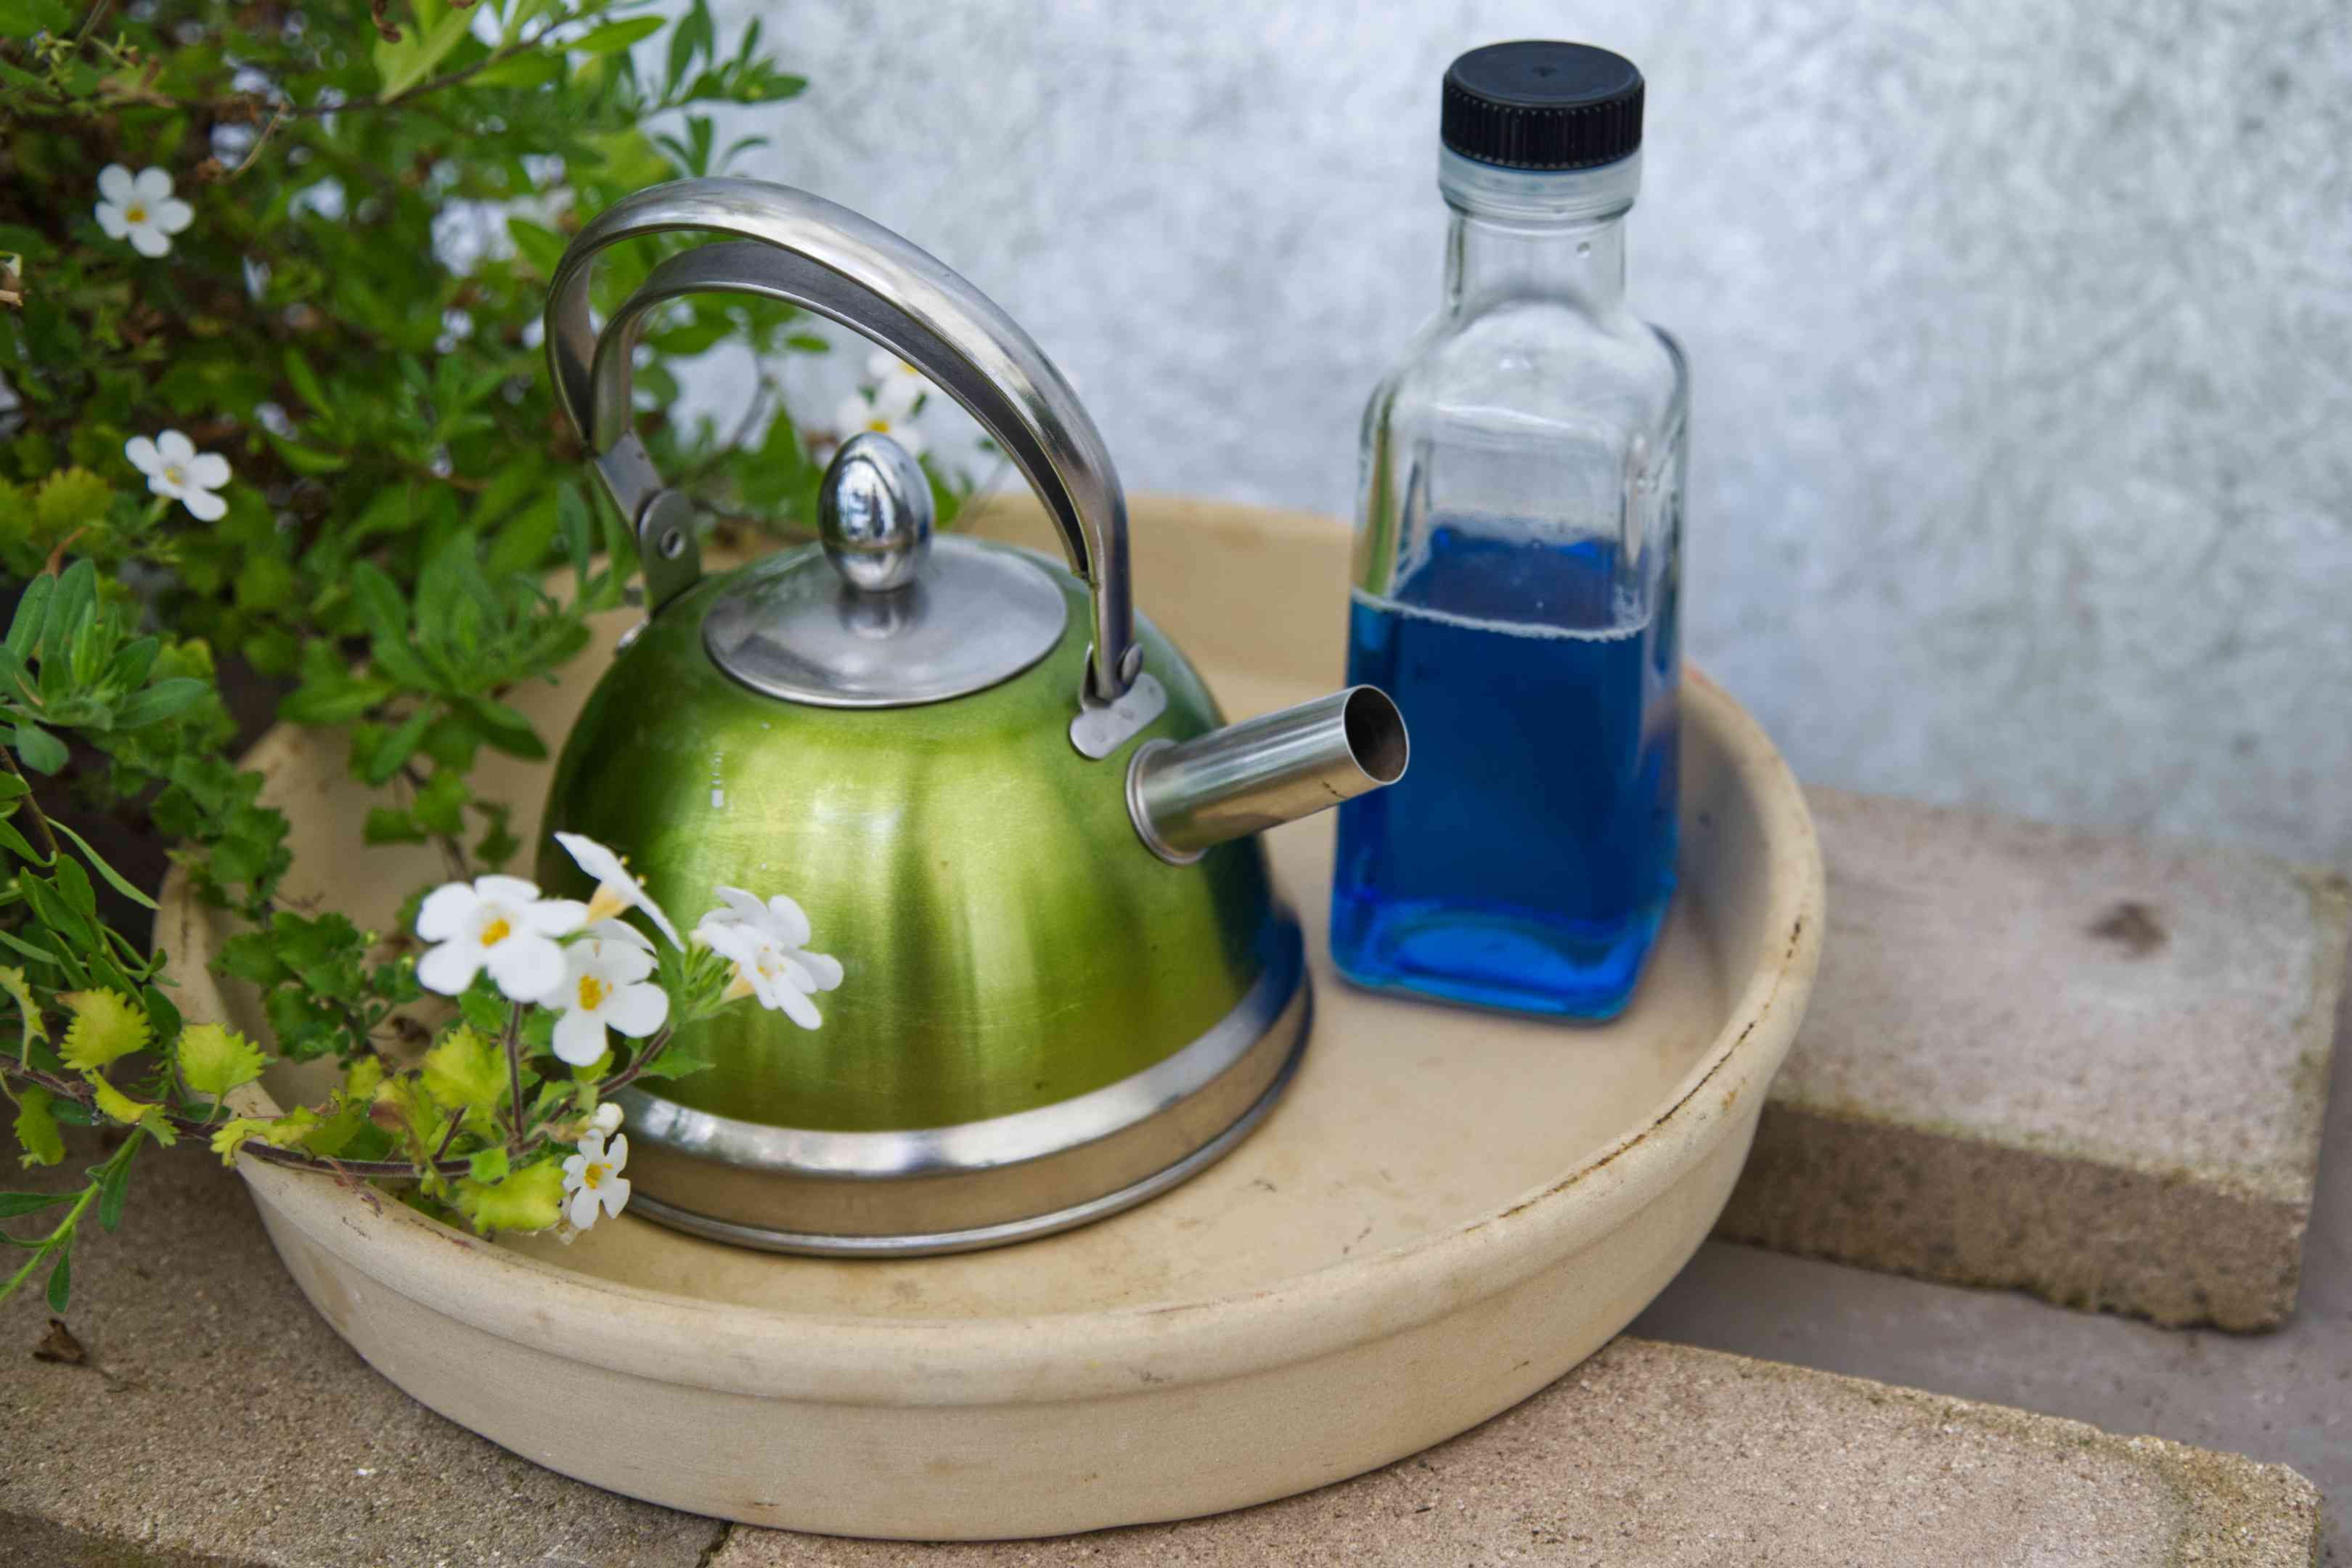 hot water kettle and blue dish soap in glass container outside near flowers